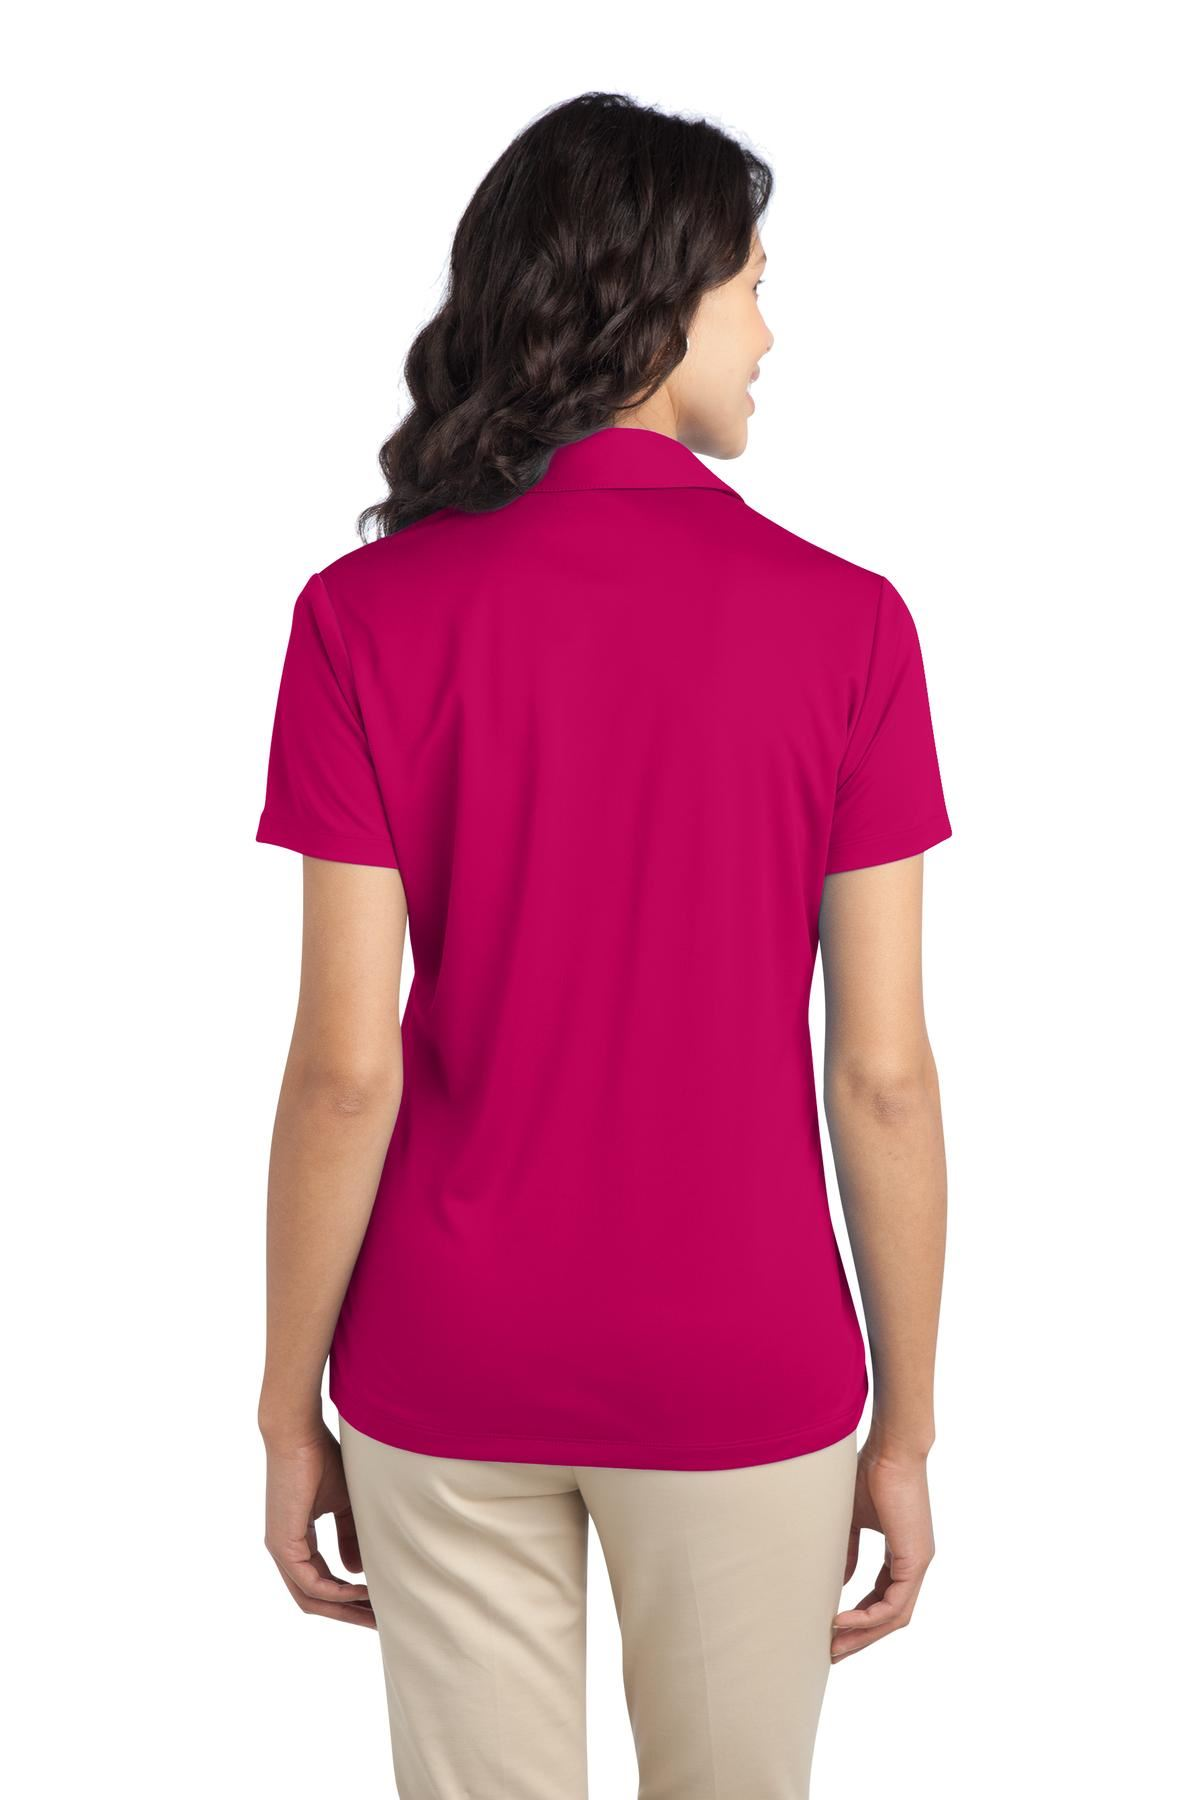 Port-Authority-Womens-Dri-Fit-SIlk-Touch-Performance-Polo-Golf-Shirt-M-L540 thumbnail 25